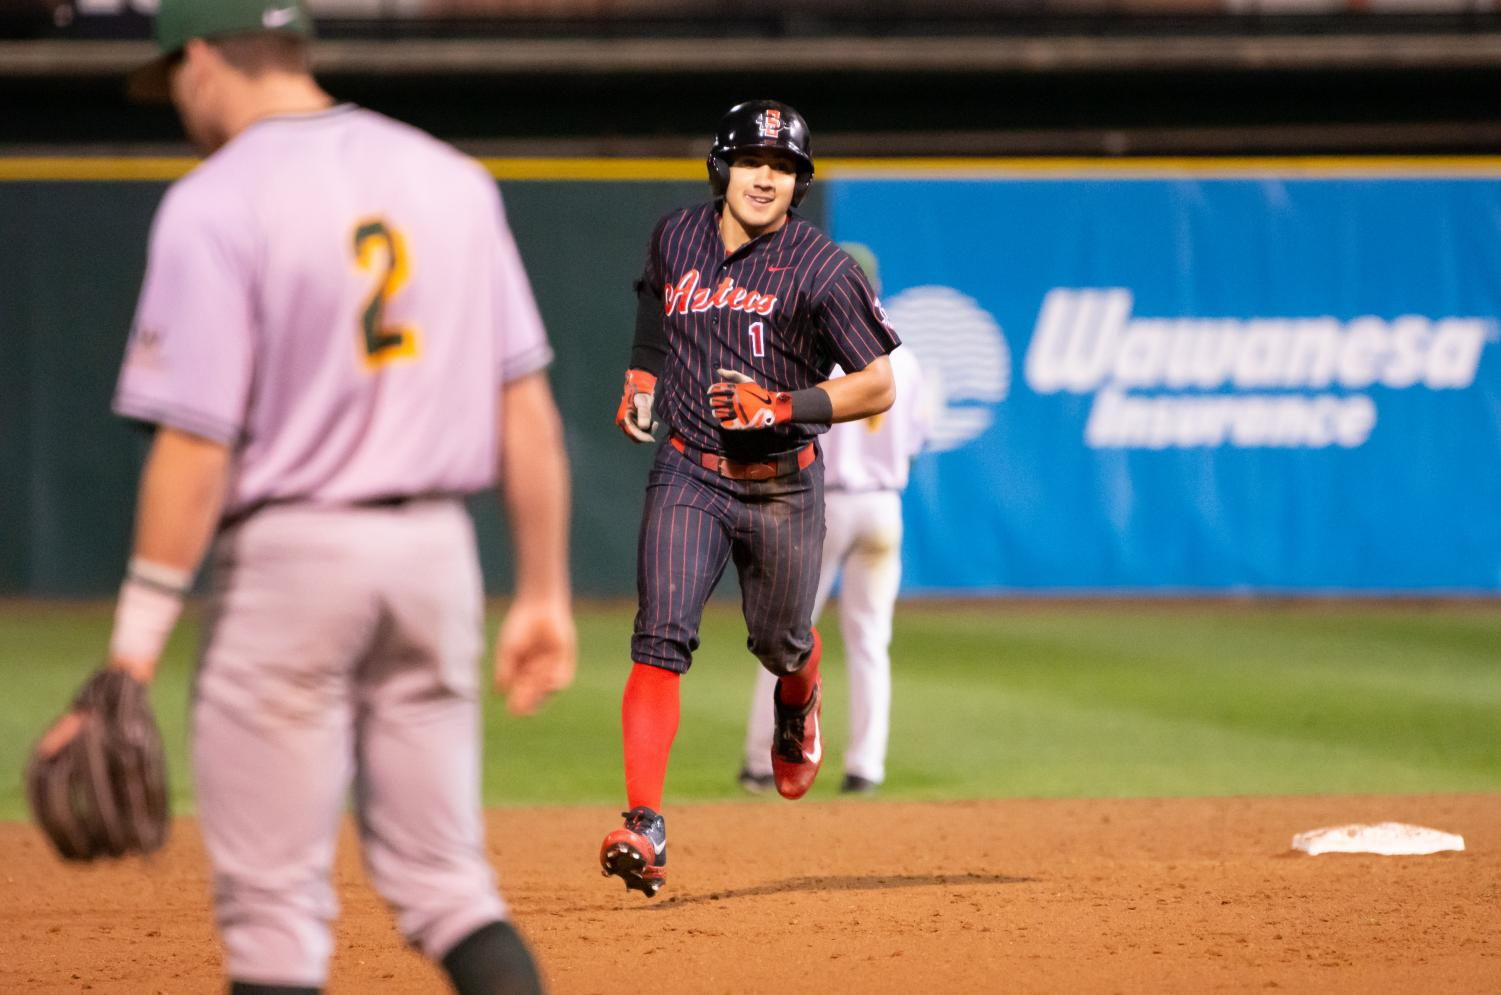 Junior outfielder Julian Escobedo rounds the bases after hitting a home run during the Aztecs 8-4 victory over USF on Feb. 15 at Tony Gwynn Stadium. Escobedo finished with a career-high five RBI's.